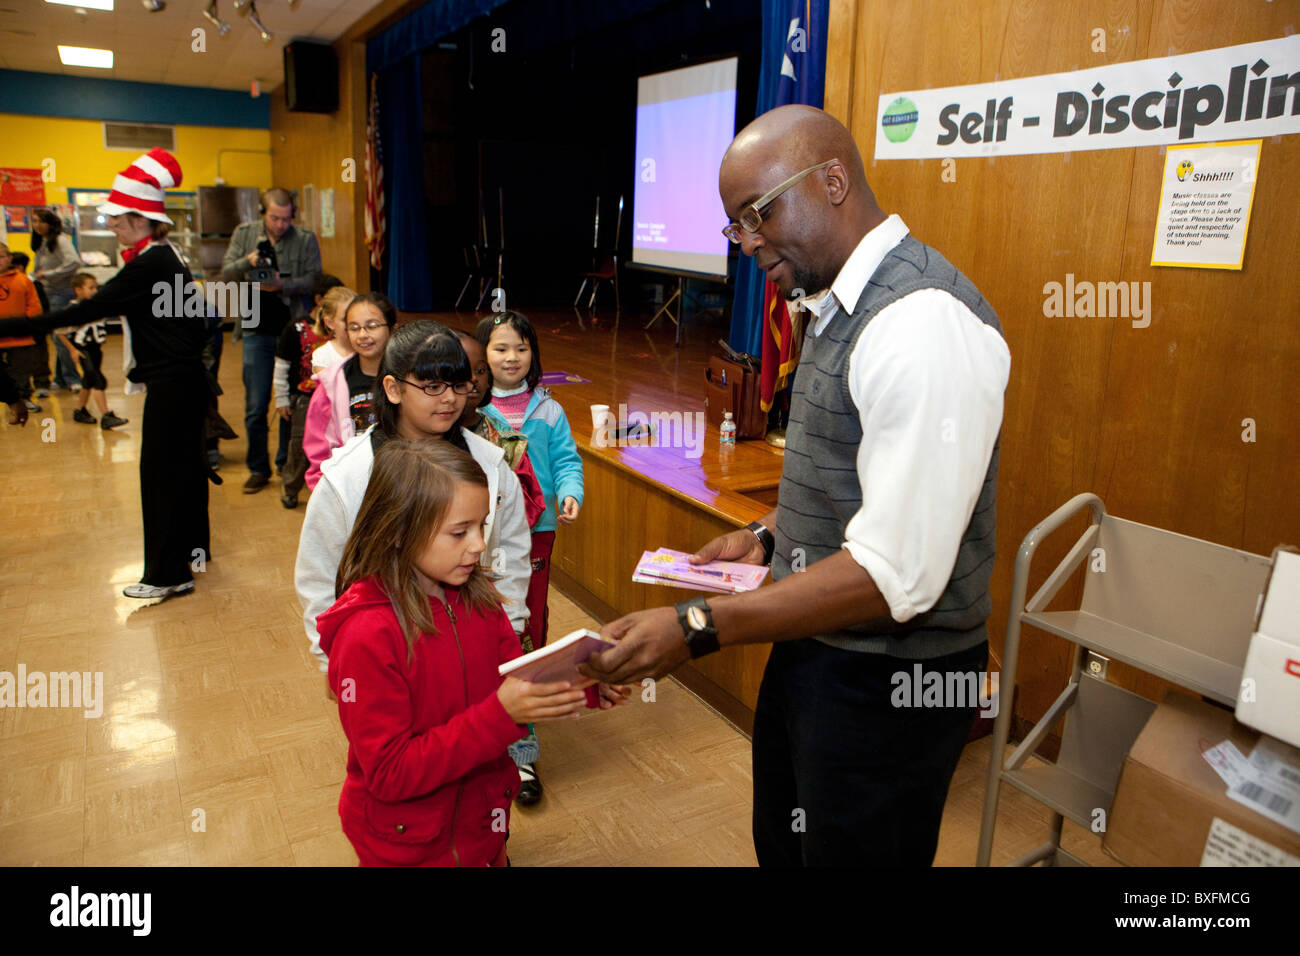 Third graders line up to receive free copy of children's author Derrick Barnes' book at school assembly - Stock Image